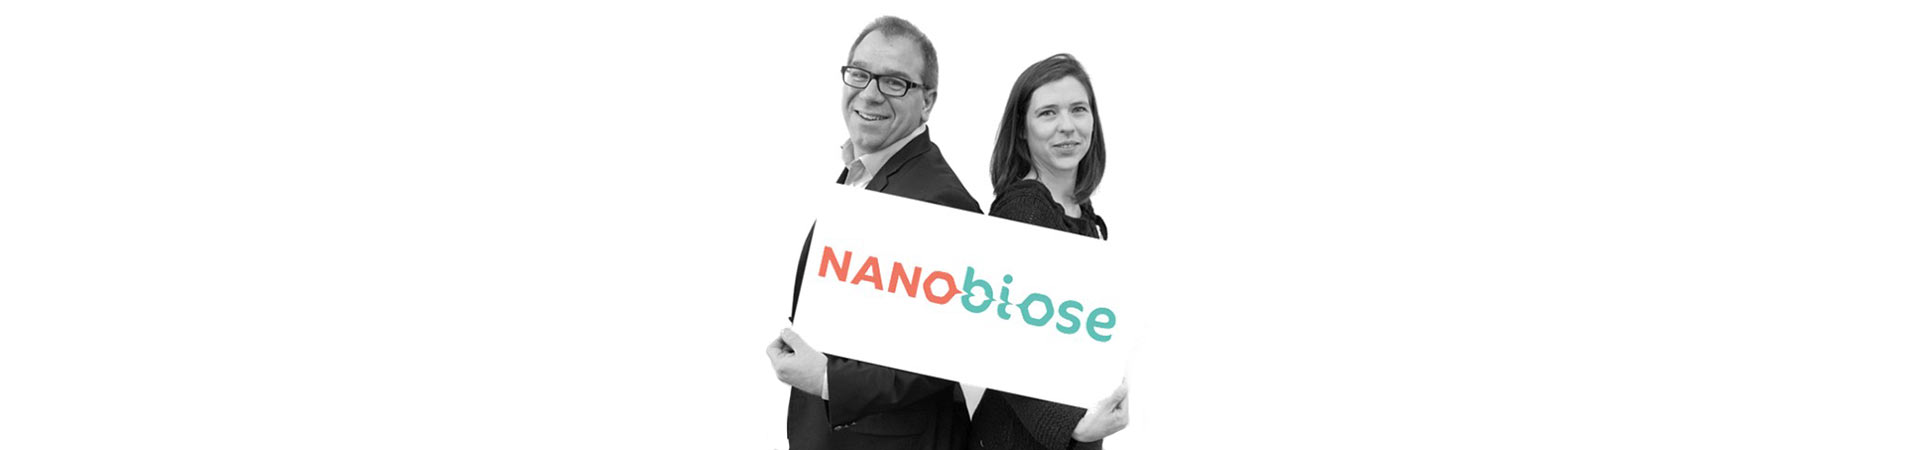 nanobiose team